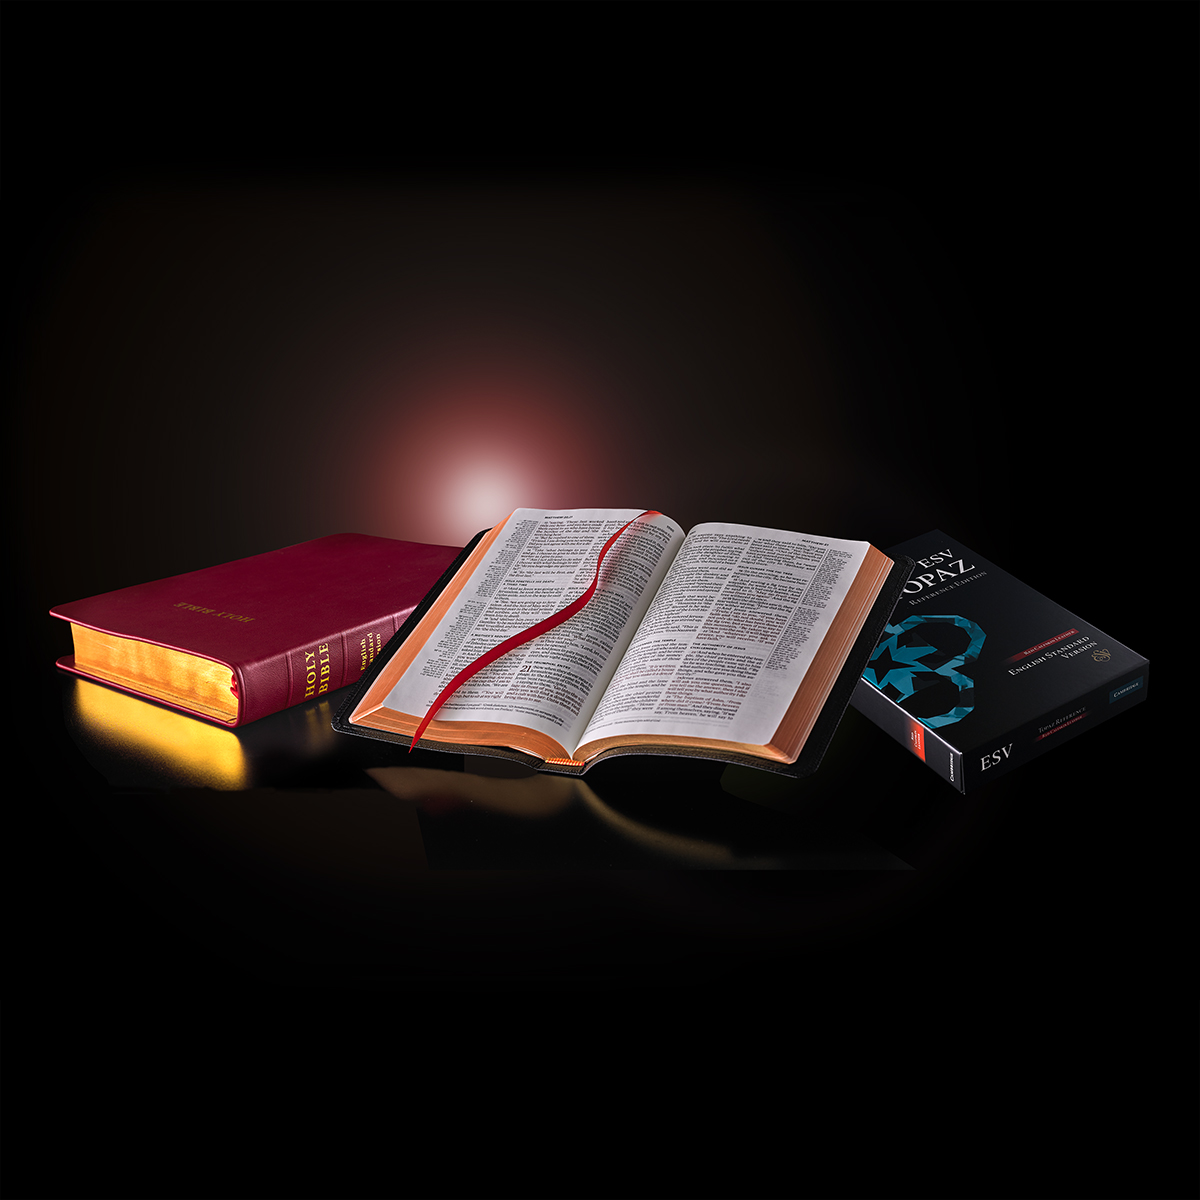 Bibles and box with red light